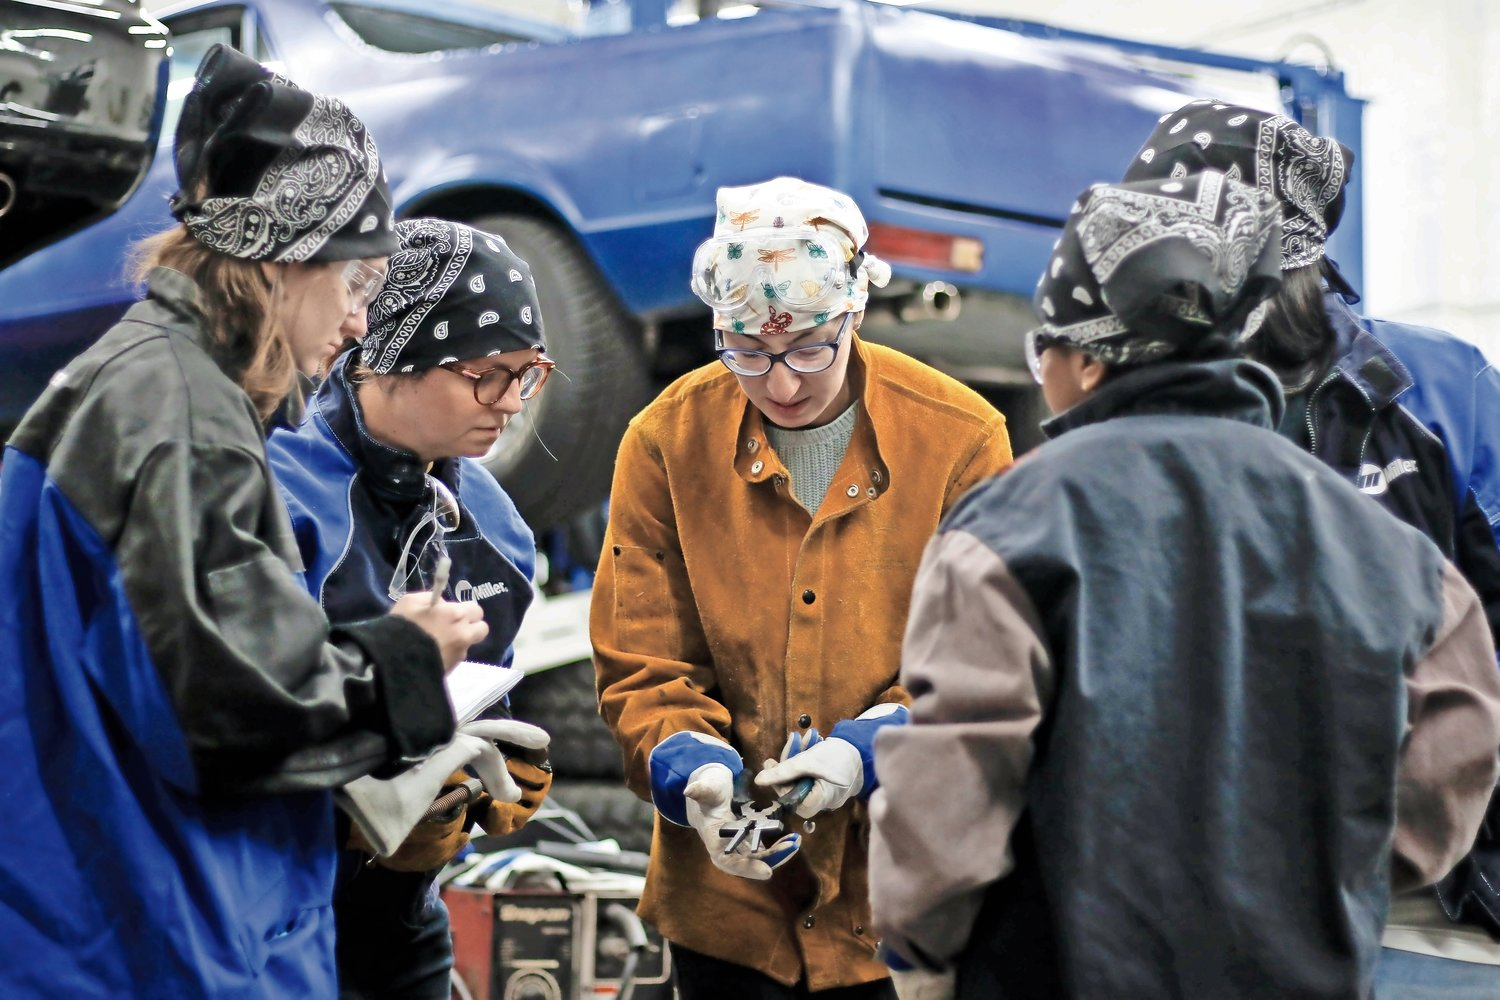 Instructor Pauline Badamo, center, showed the class how to use MIG pliers, and explained what they are used for.